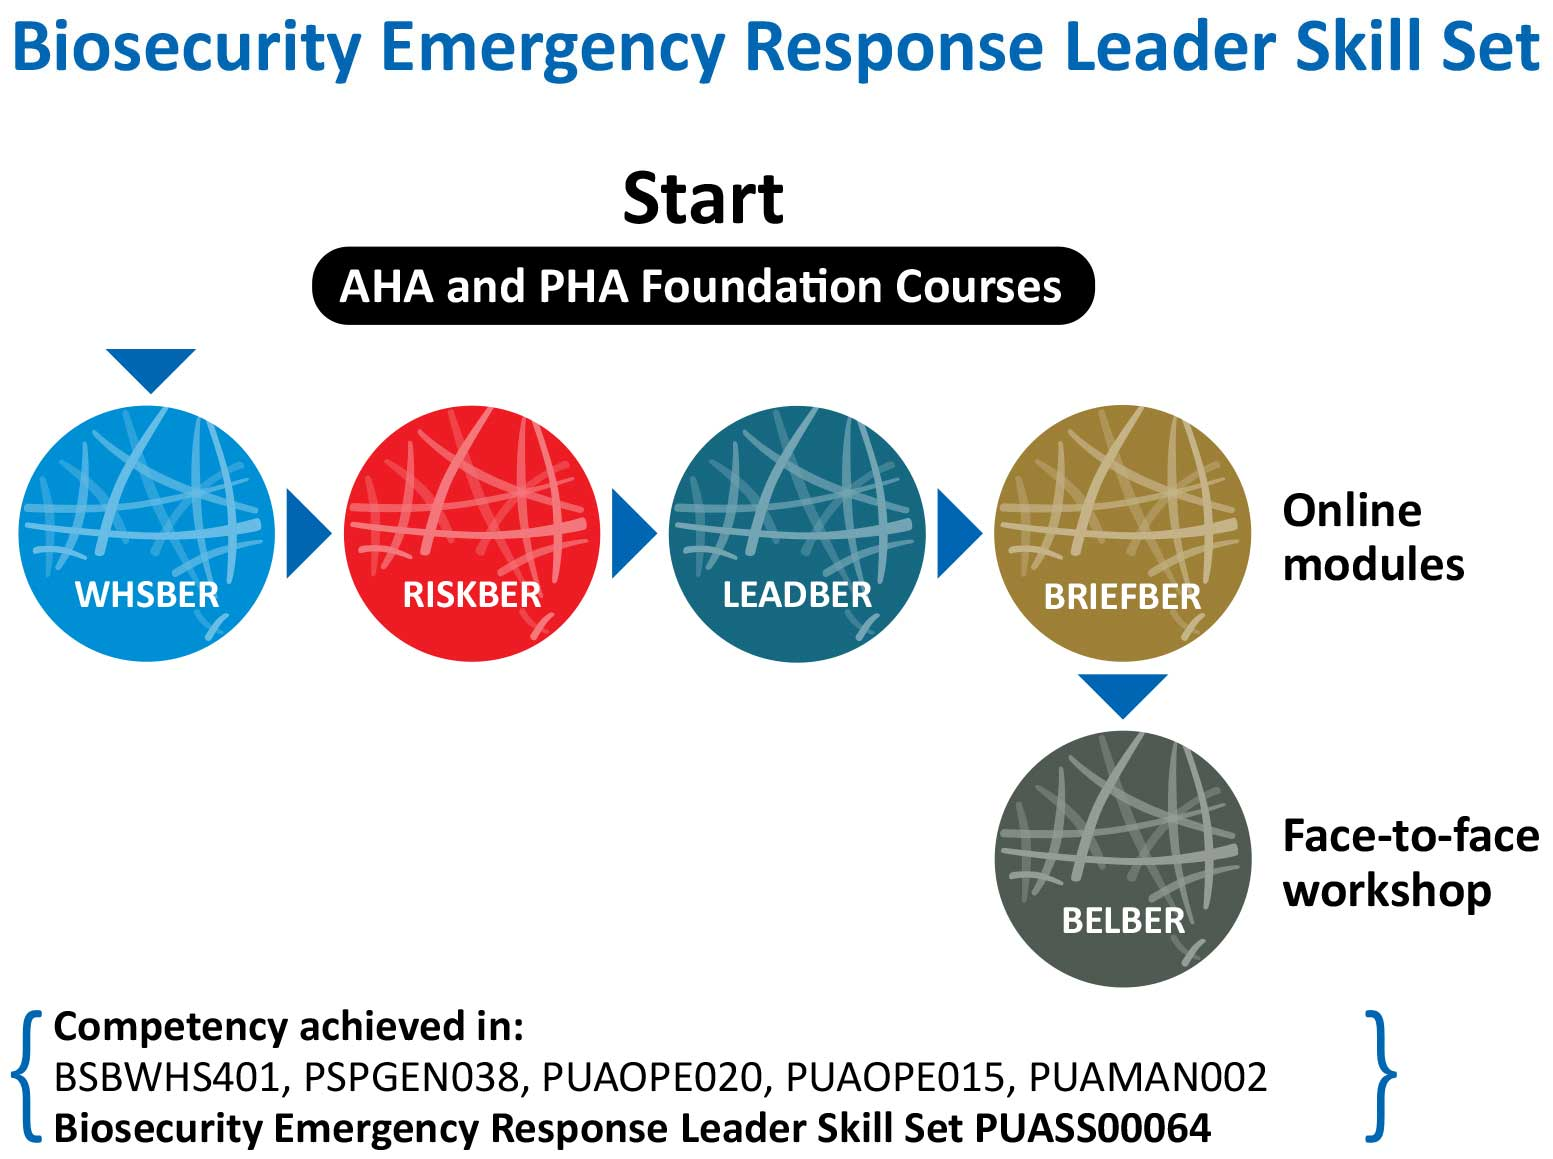 Biosecurity emergency response leader